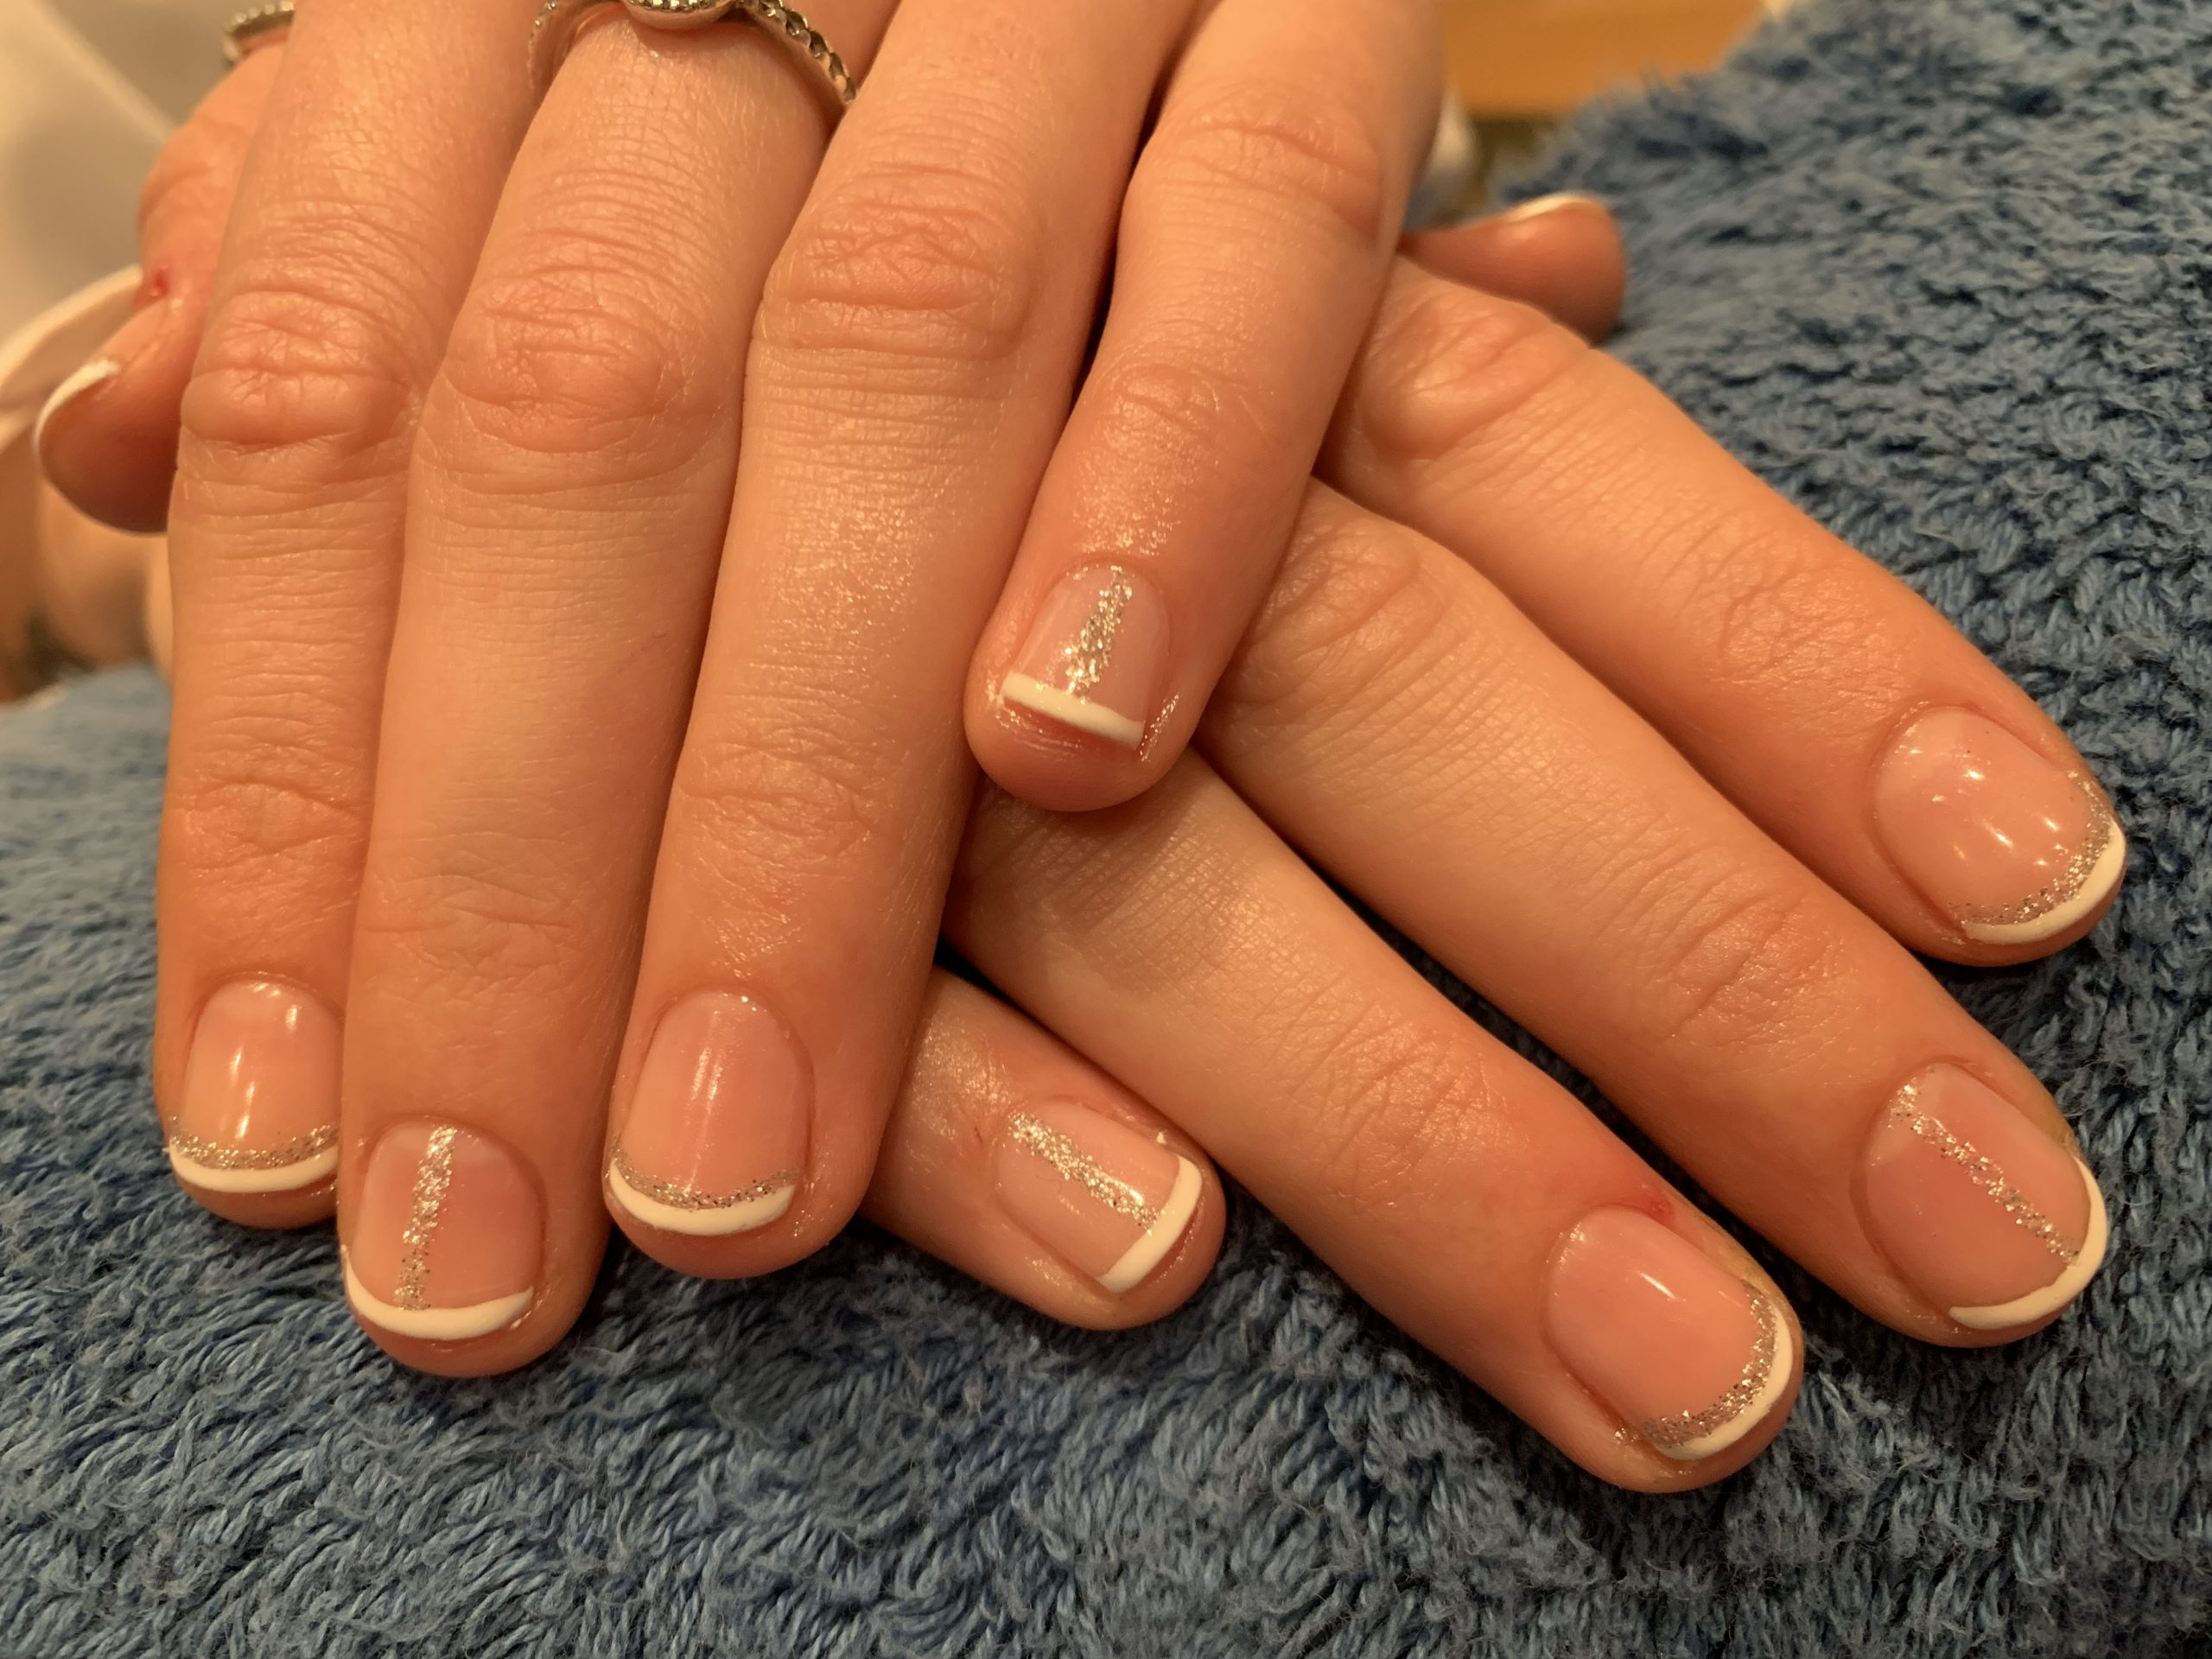 CND Shellac, nail art, nail pro, nail artist, nail technician, gel nails, shellac nails, acrylic nails, ware, mobile, french polish, Potter's Pinkies